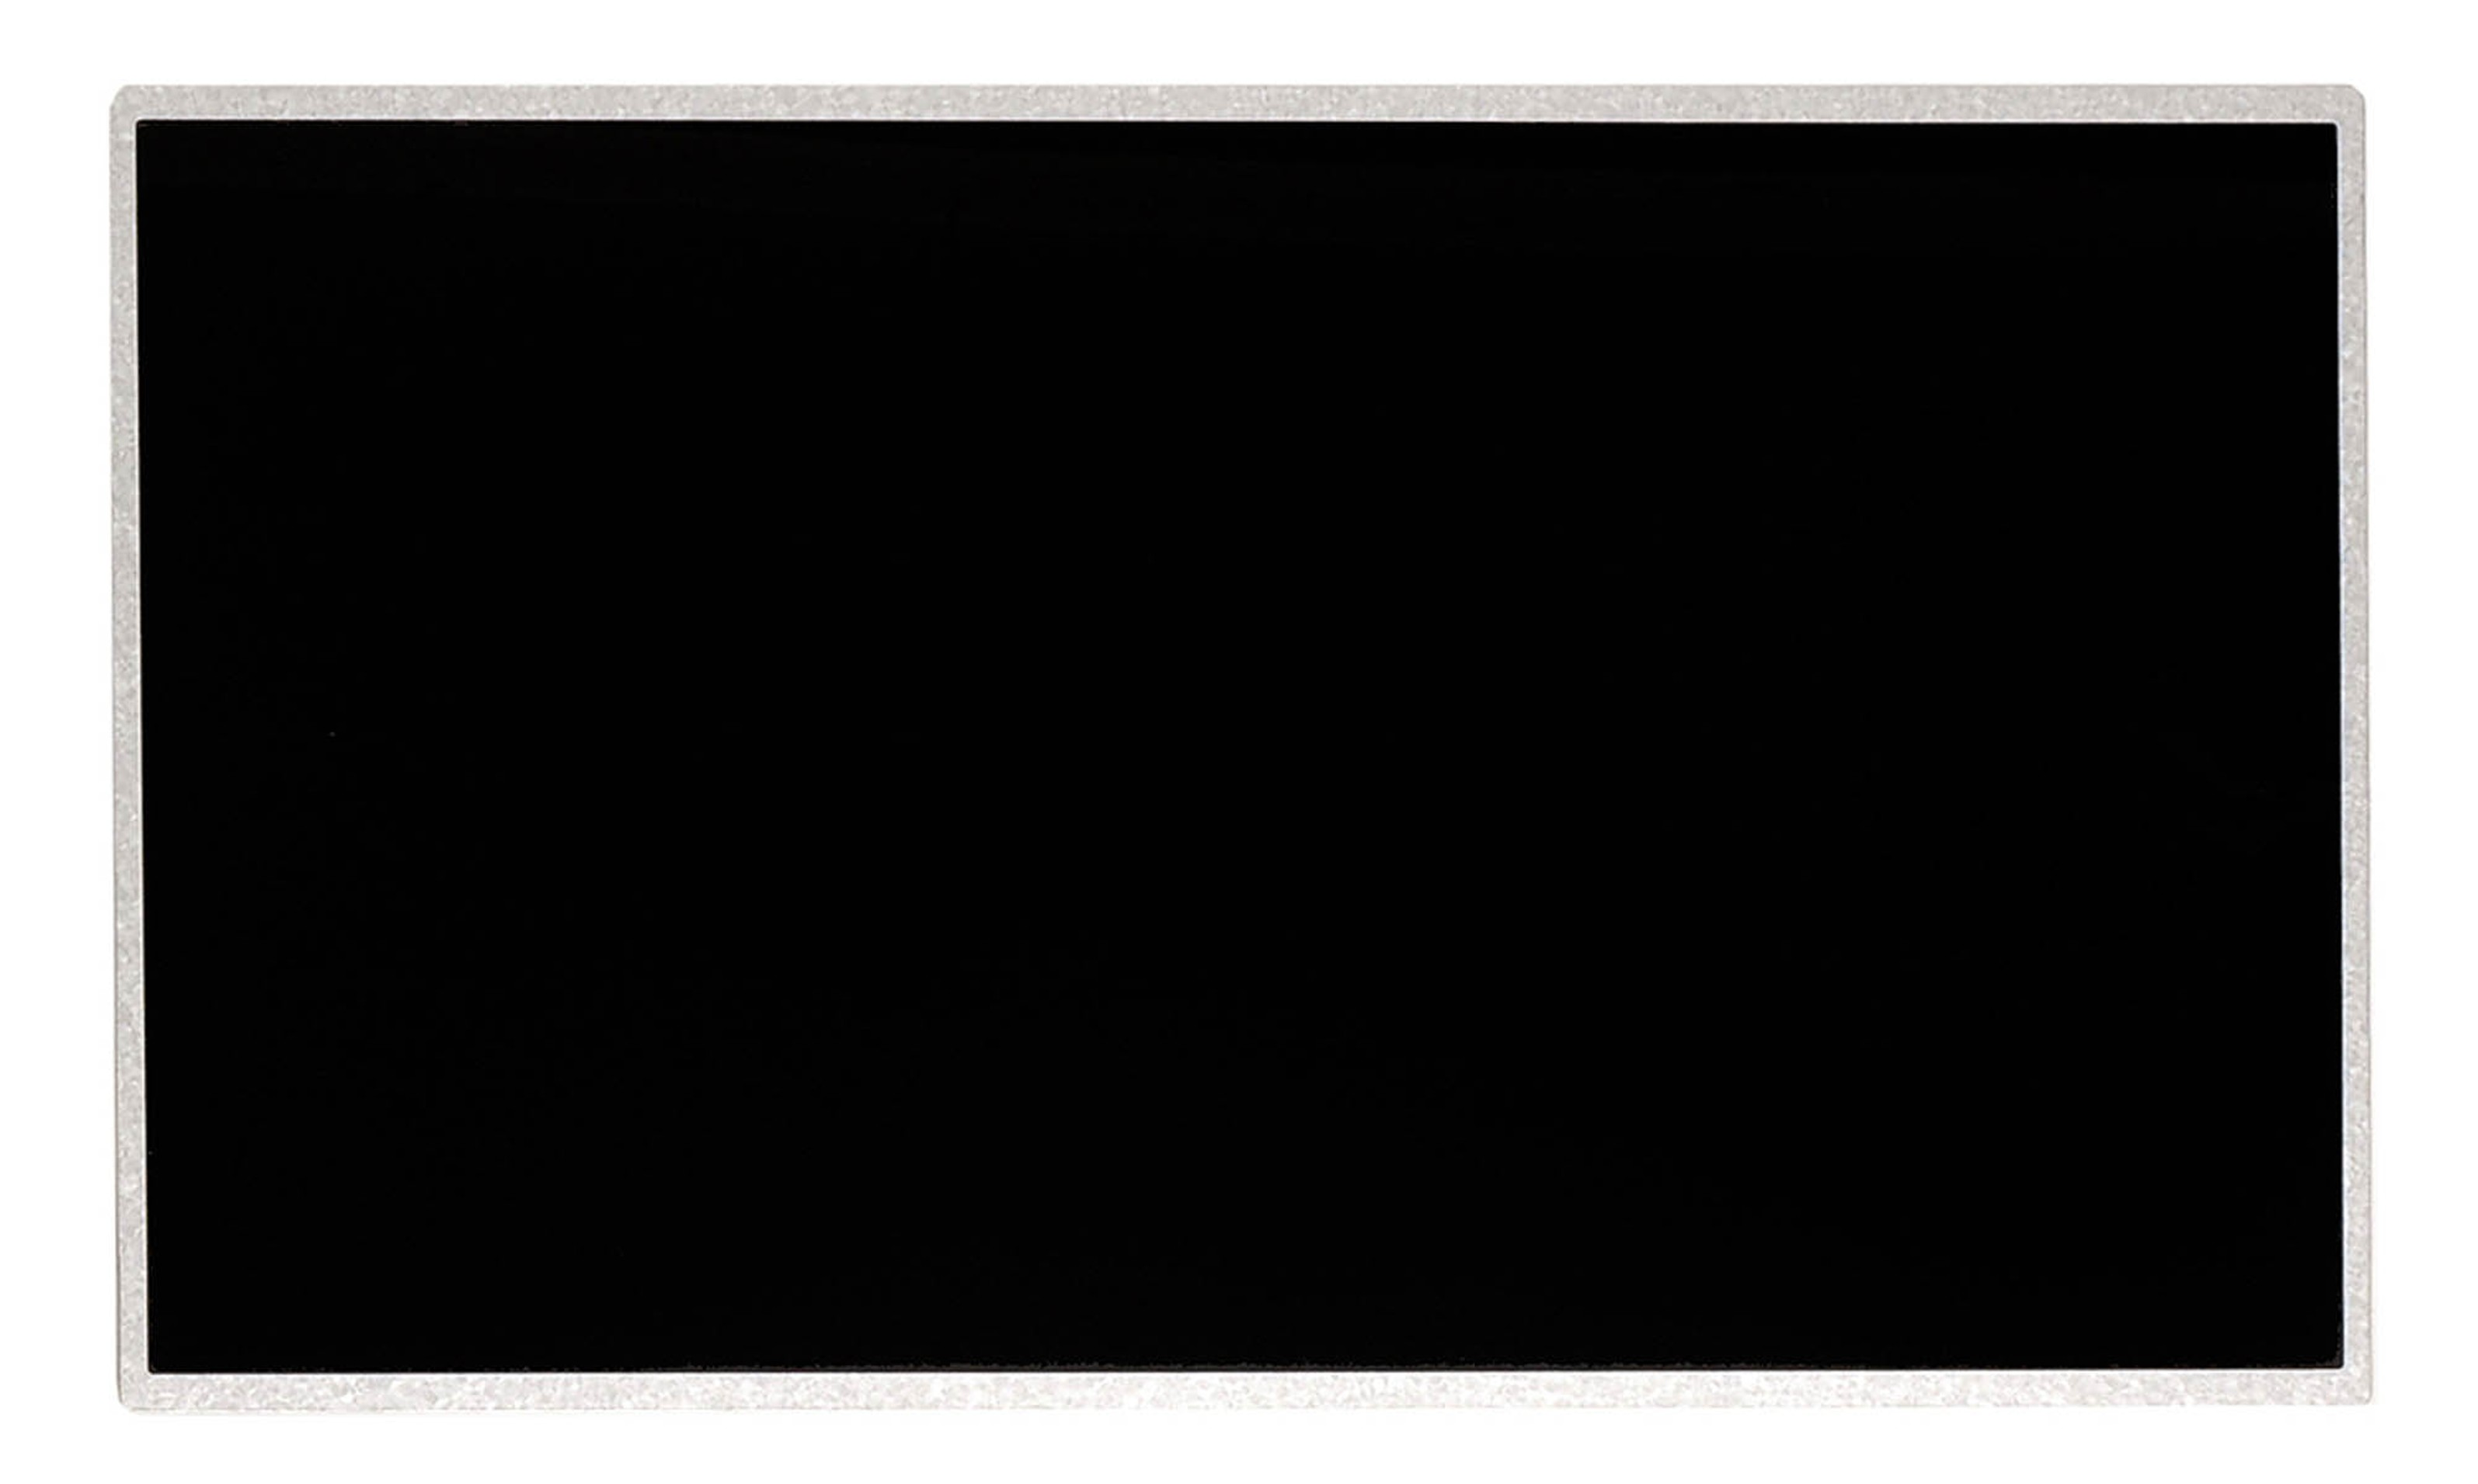 "LCD LED LG-Philips 15.6"" 1366x768 WXGA HD 40pin, LP156WH4"